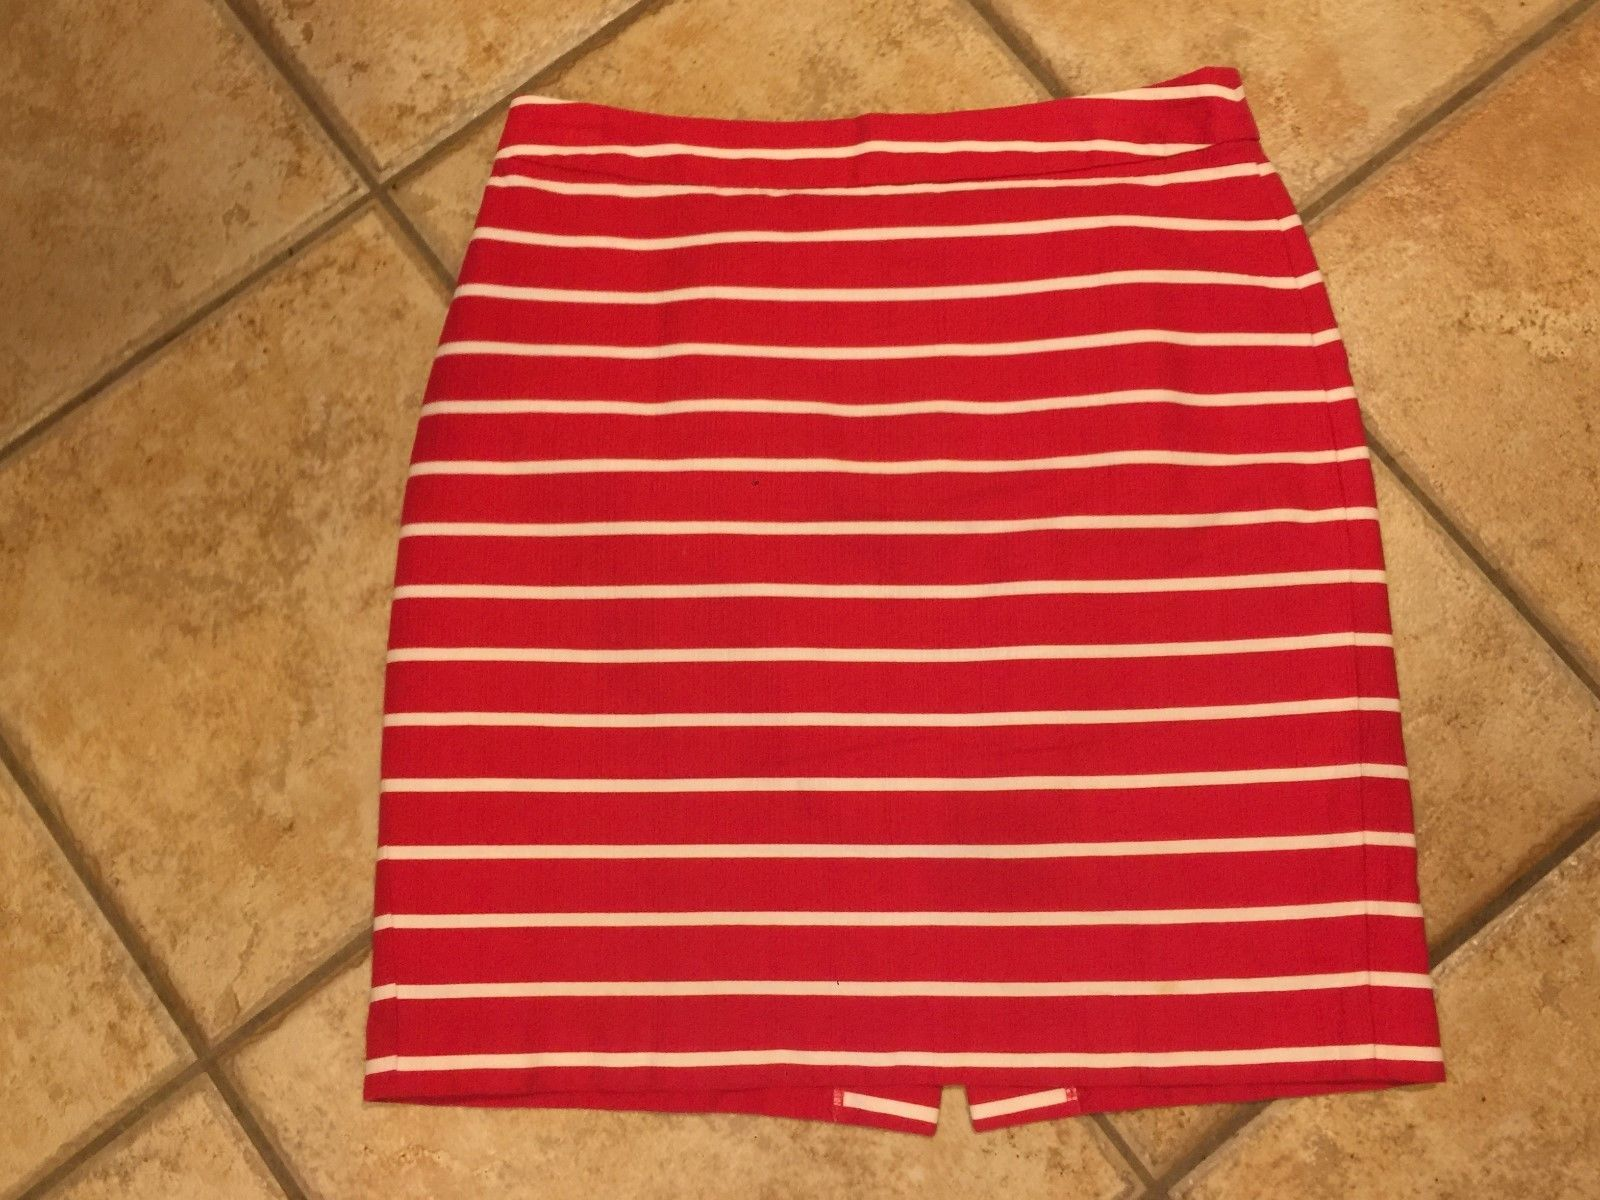 NWT Womens BANANA REPUBLIC Graphic Logo Tee Scoop Neck T-Shirt Sz Large Red